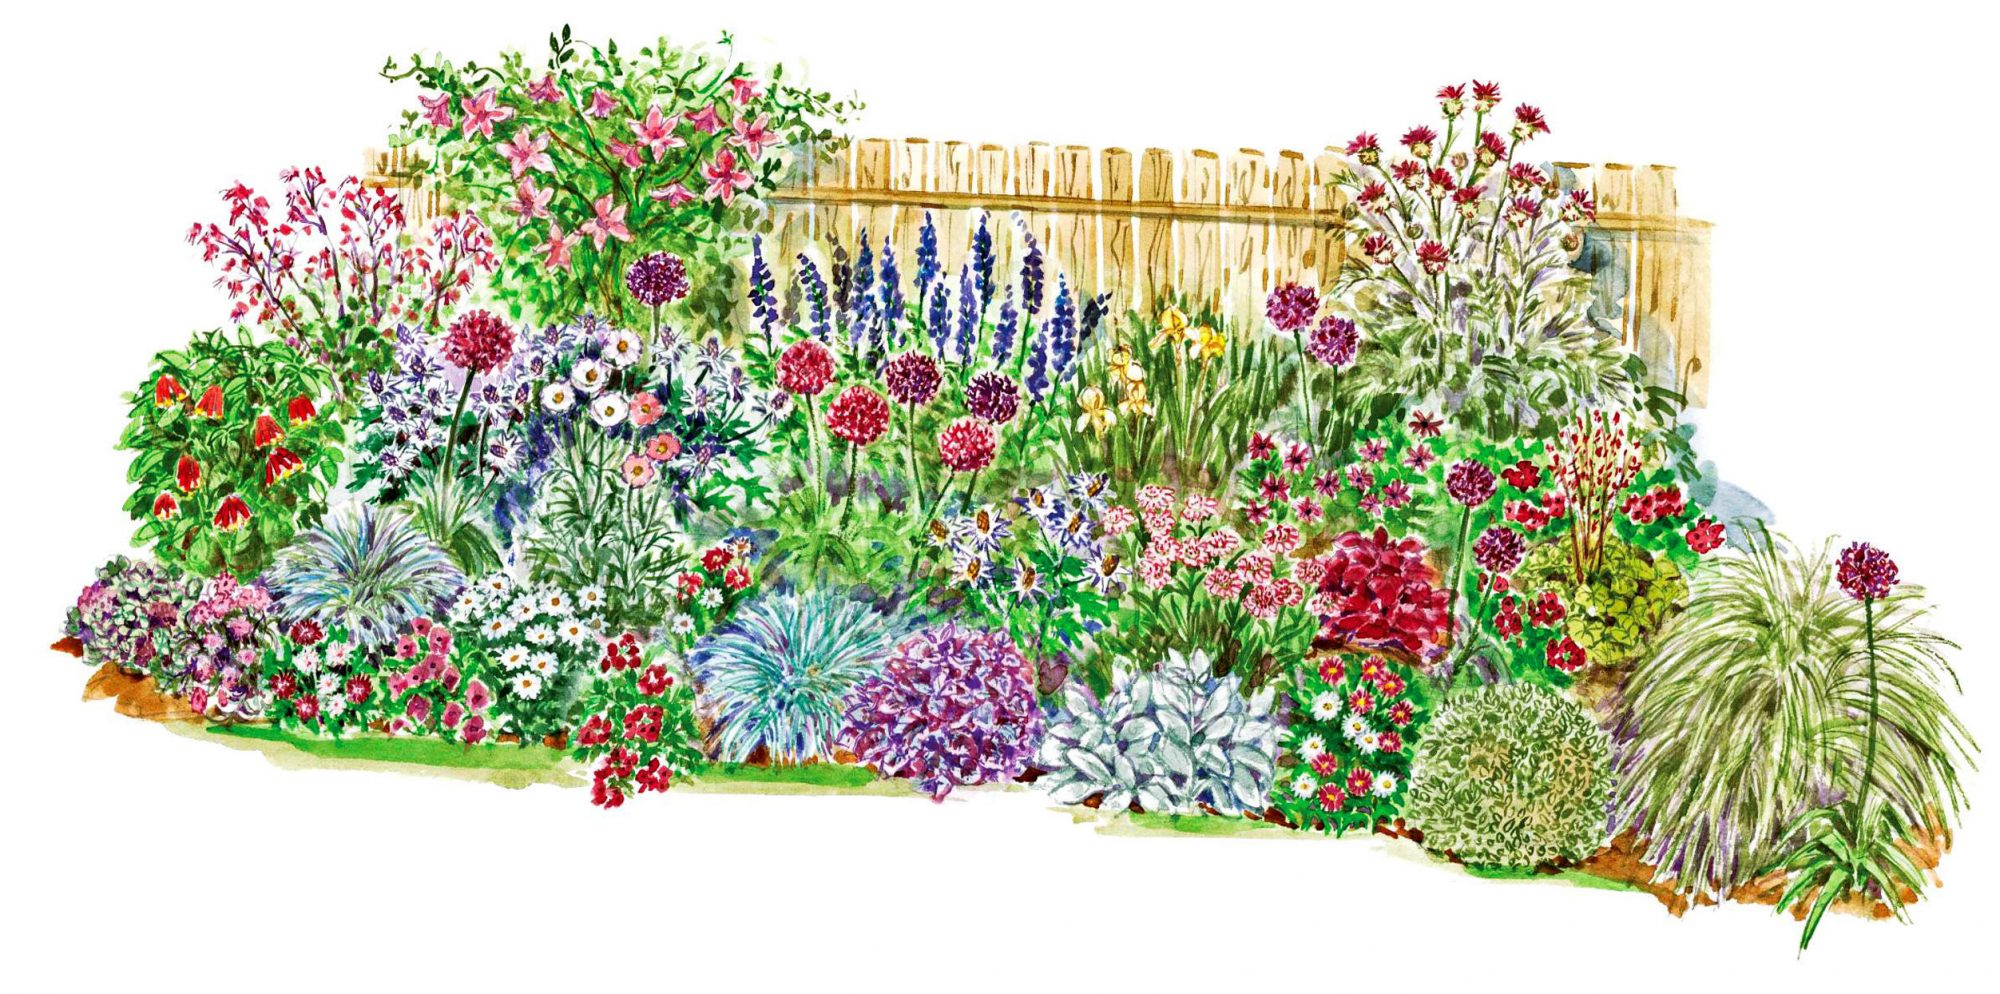 garden illustration with fence